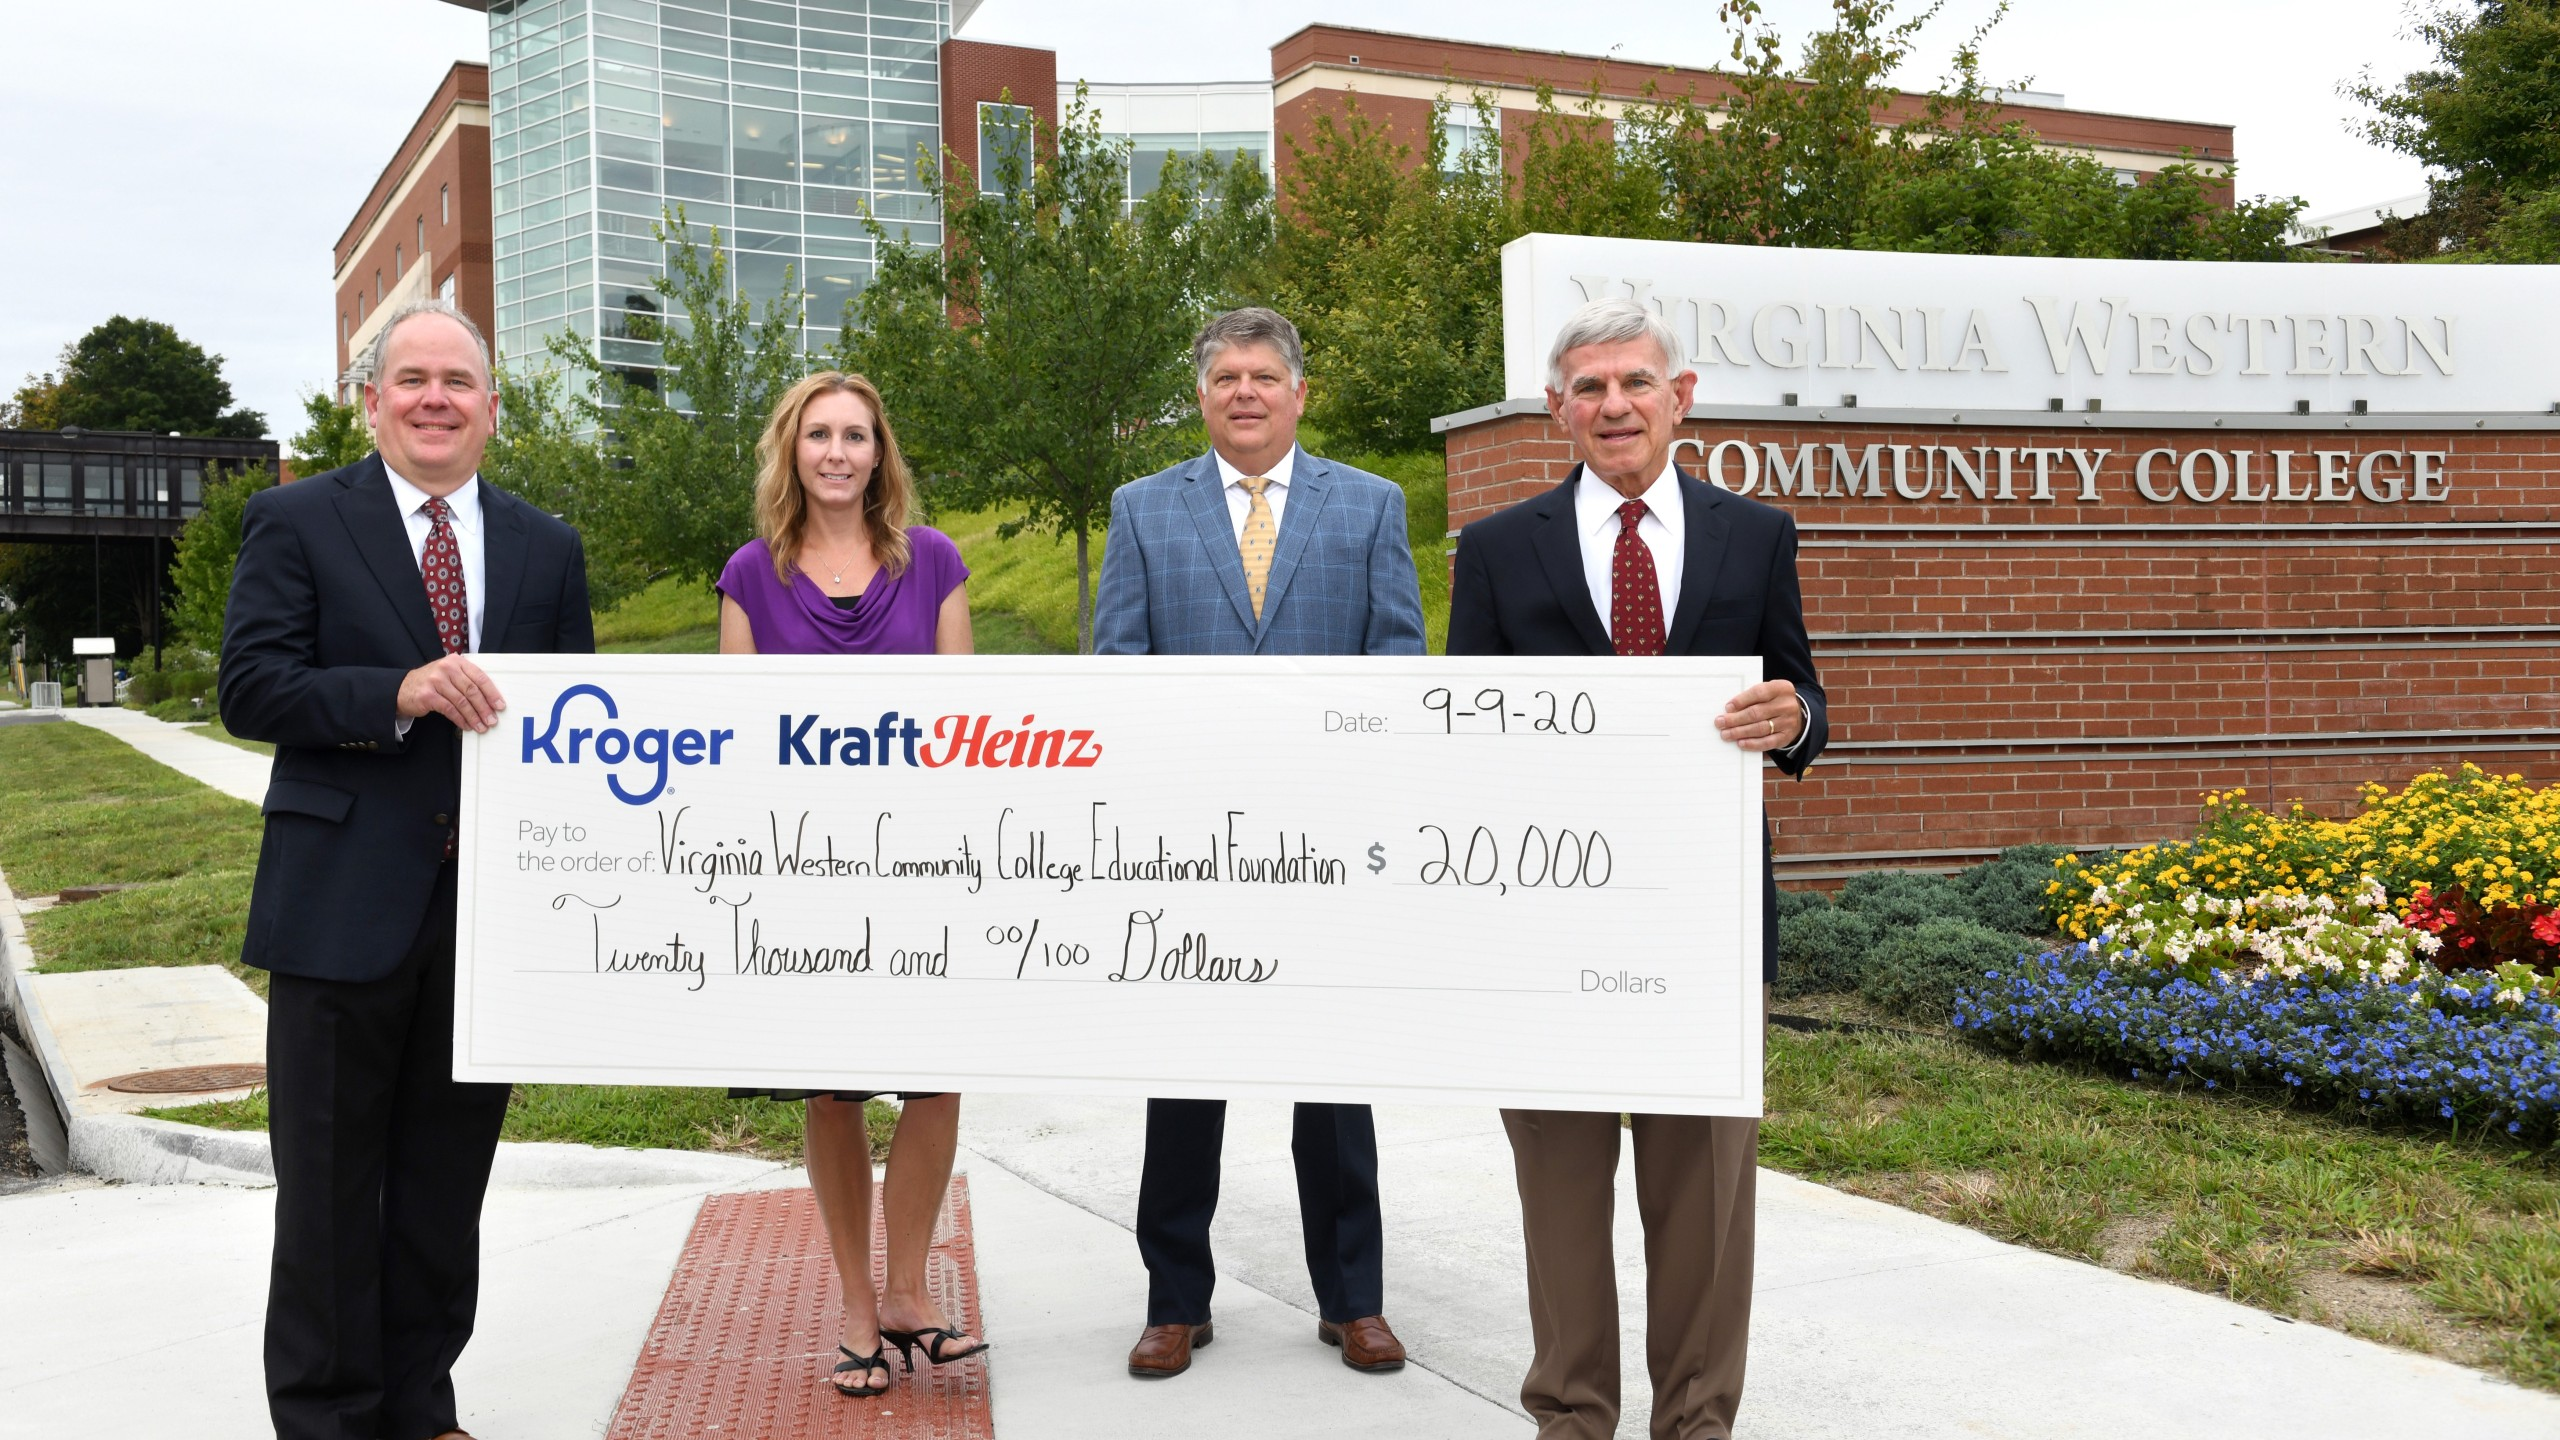 David Dantzler, Kroger executive; Allison McGee, corporate affairs manager for Kroger Mid-Atlantic; Glenn Thompson, Kroger Mid-Atlantic Division President; and Dr. Robert H. Sandel, President of Virginia Western took part in the donation of $20,000 to the Student Co-Op. (Photo: Courtesy Virginia Western)